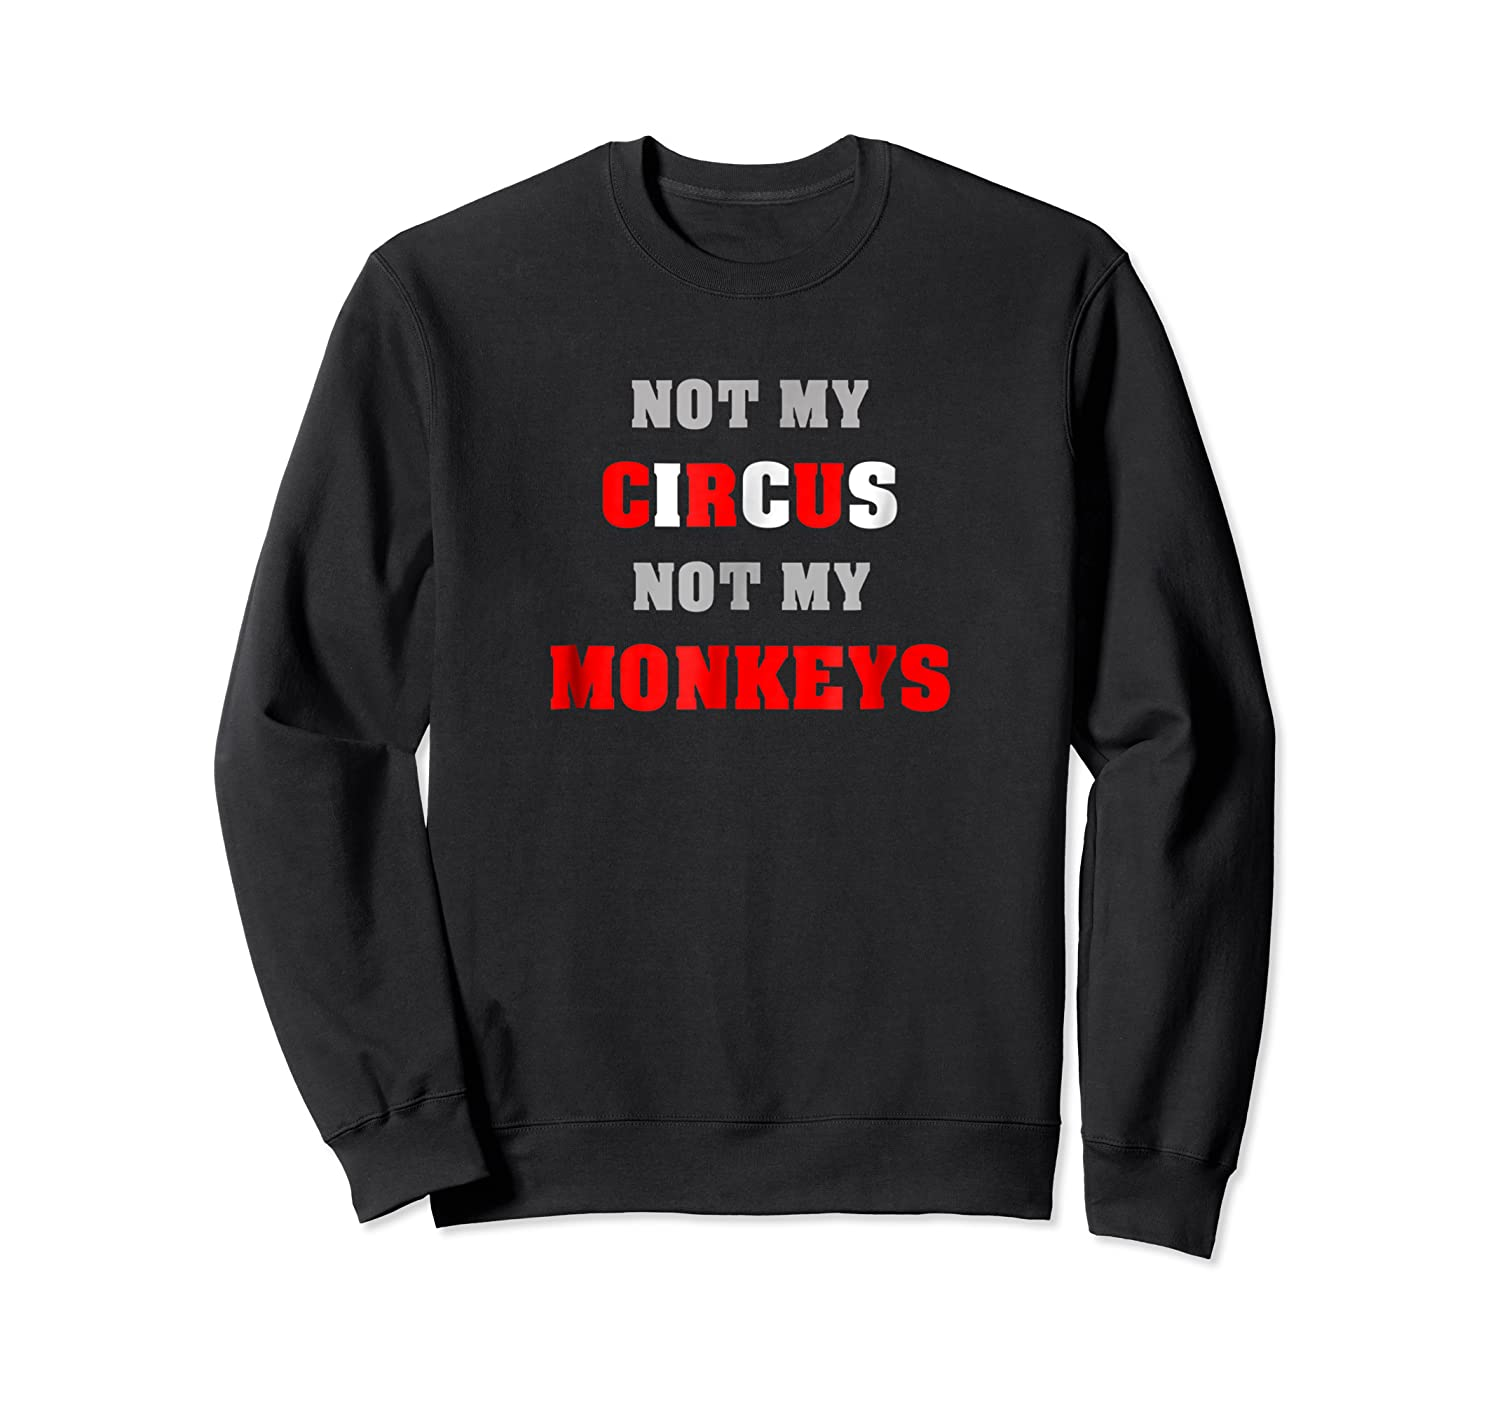 Not My Circus Not My Monkeys Funny Quote Shirts Crewneck Sweater